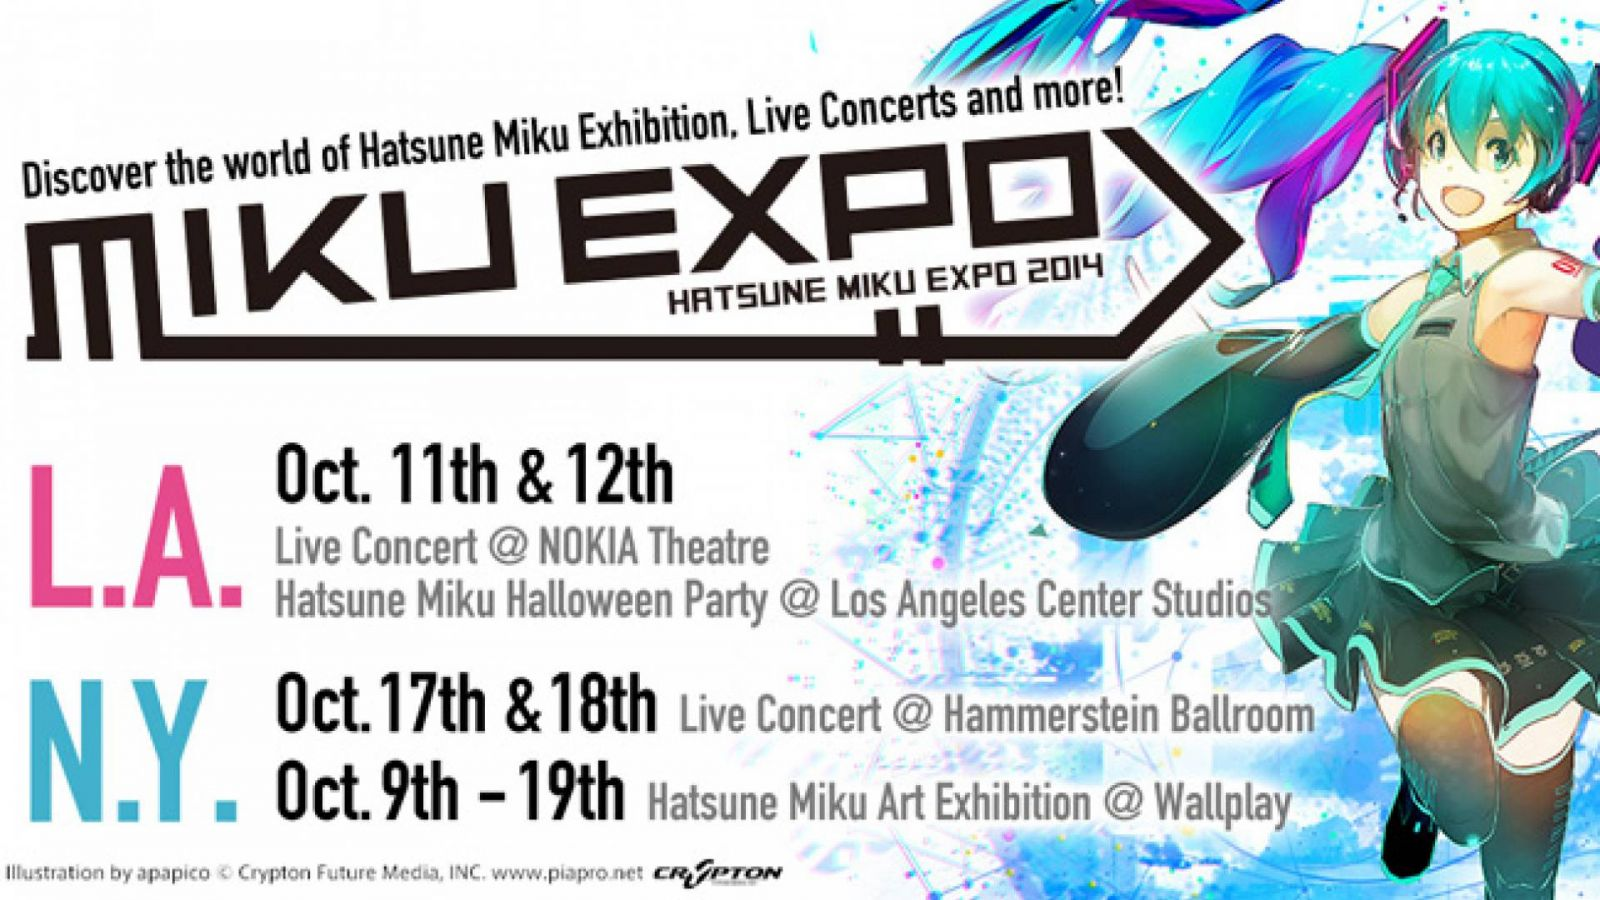 HATSUNE MIKU EXPO 2014 Releases Official Theme Song © apapico / Crypton Future Media, INC.